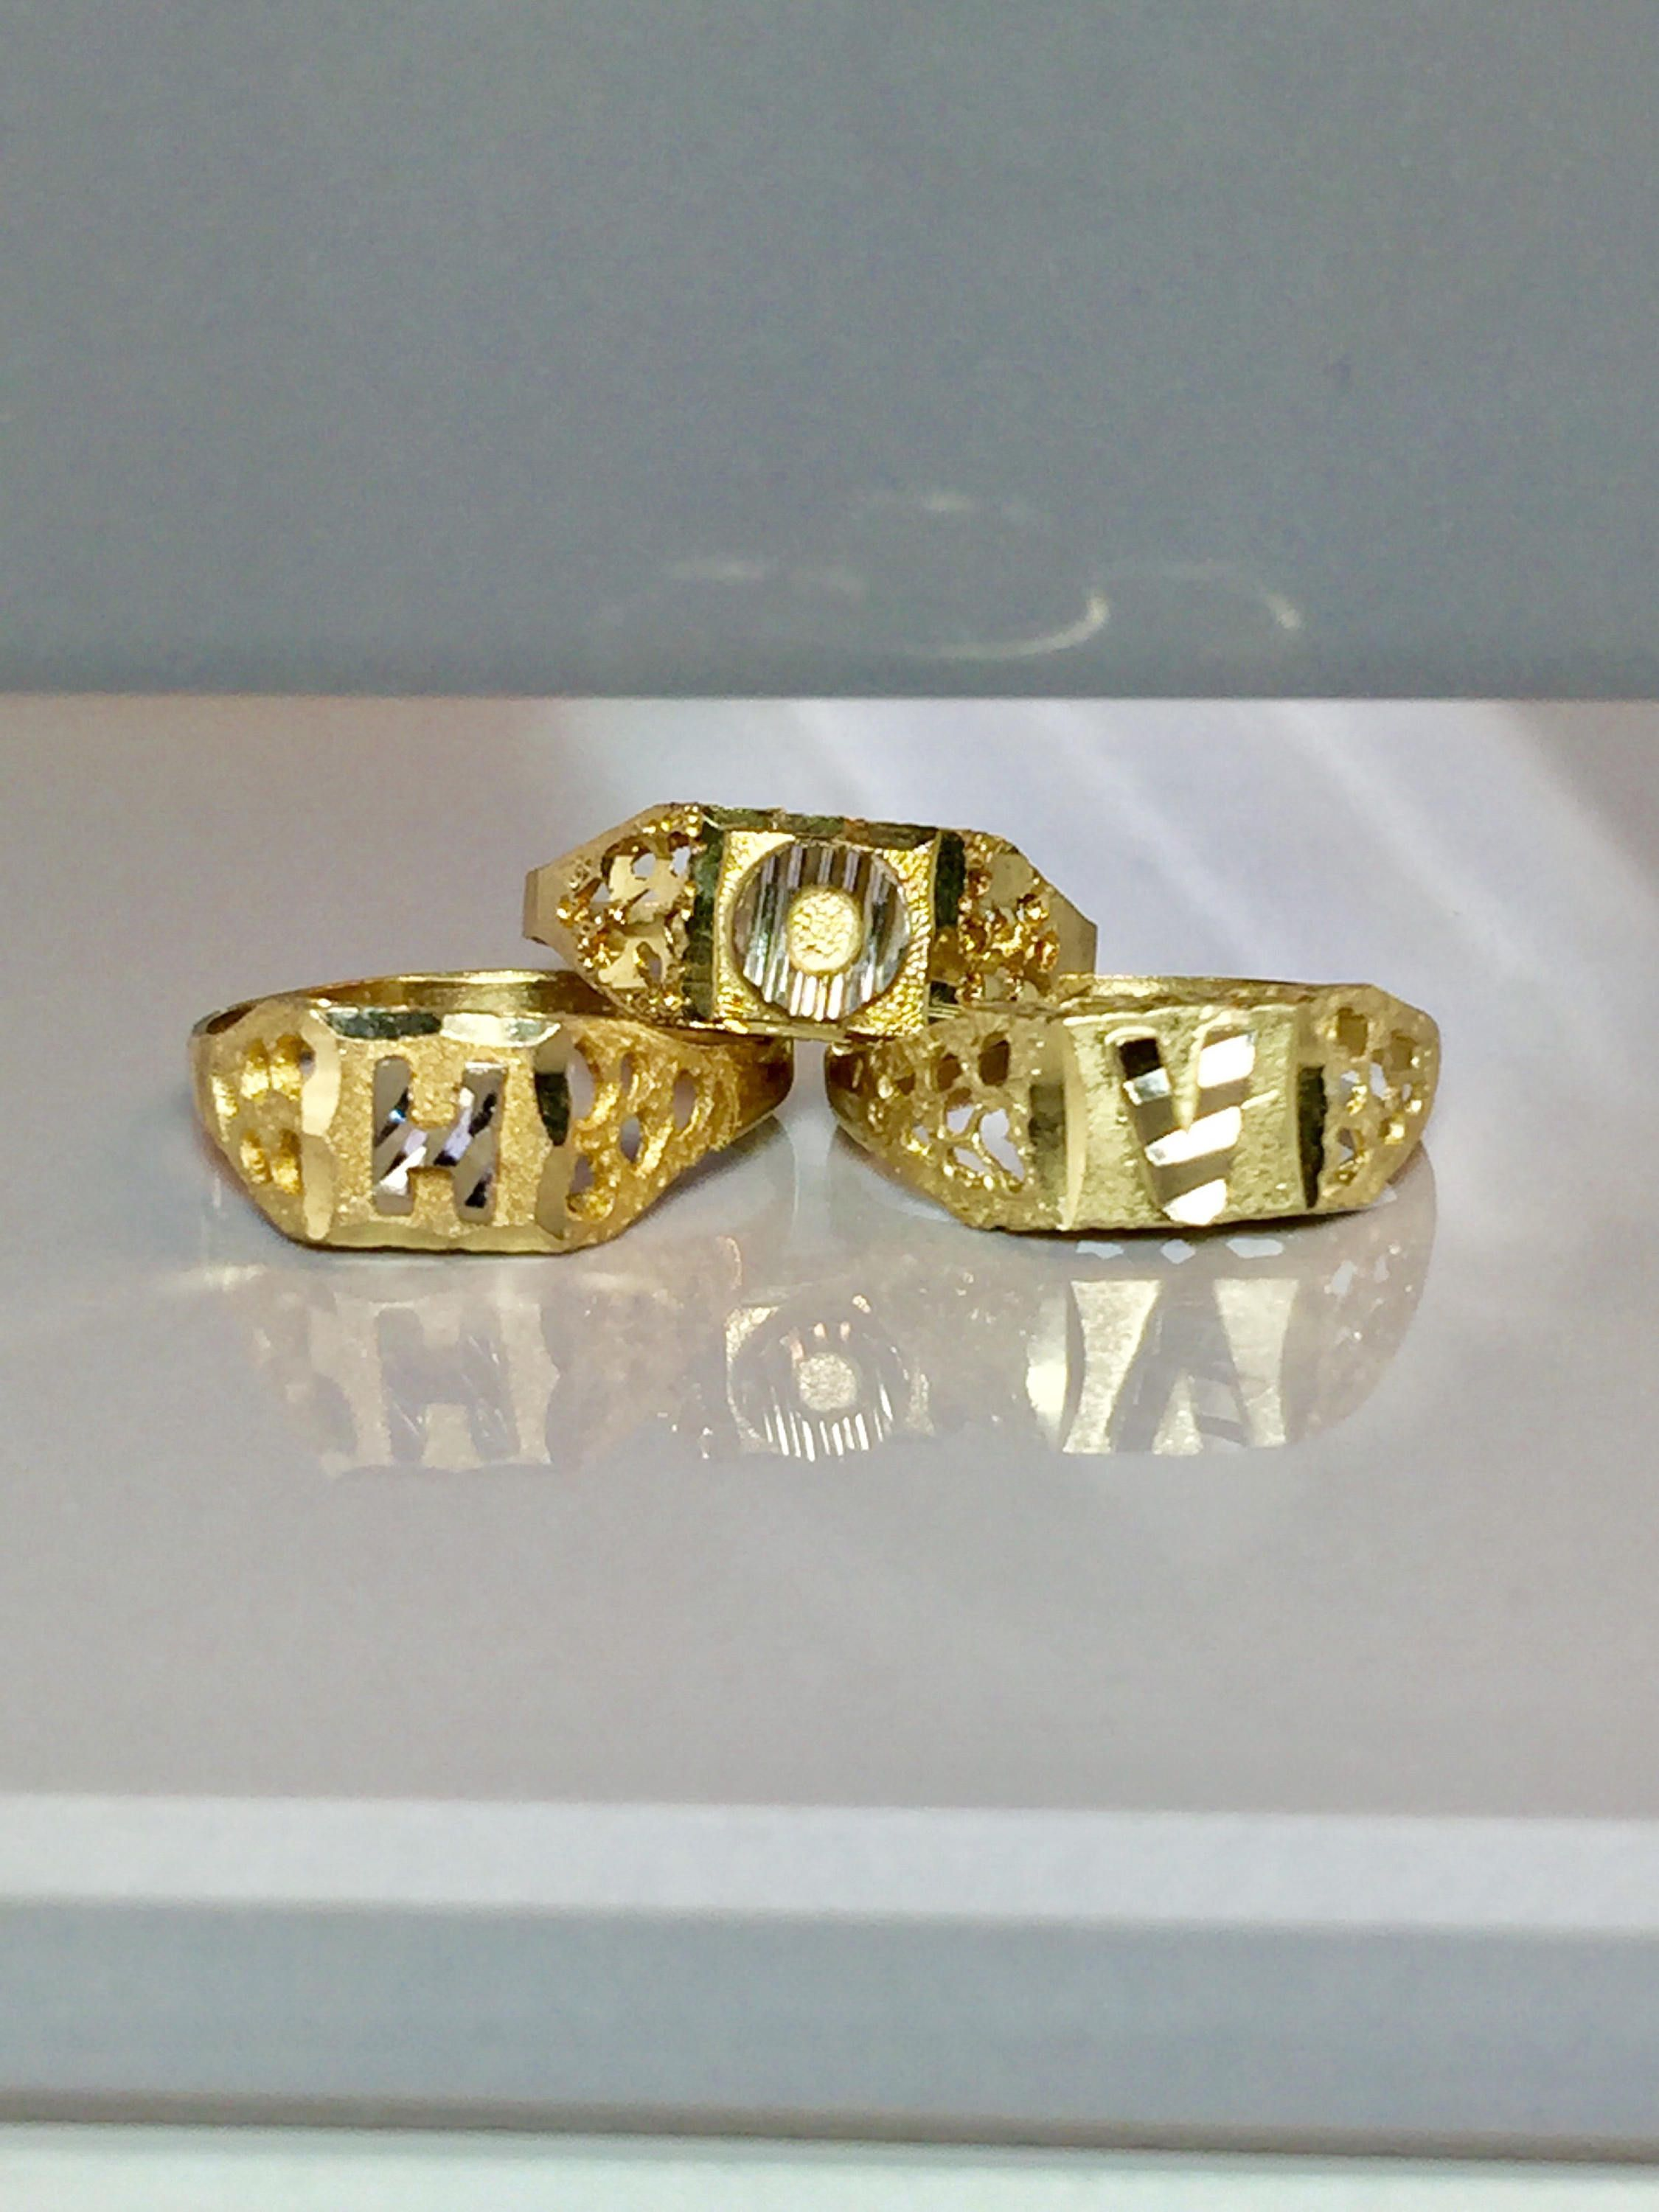 10k Solid Gold Initial Ring Block Letter Ring Pinky Ring Etsy Gold Initial Ring Initial Ring Monogram Ring